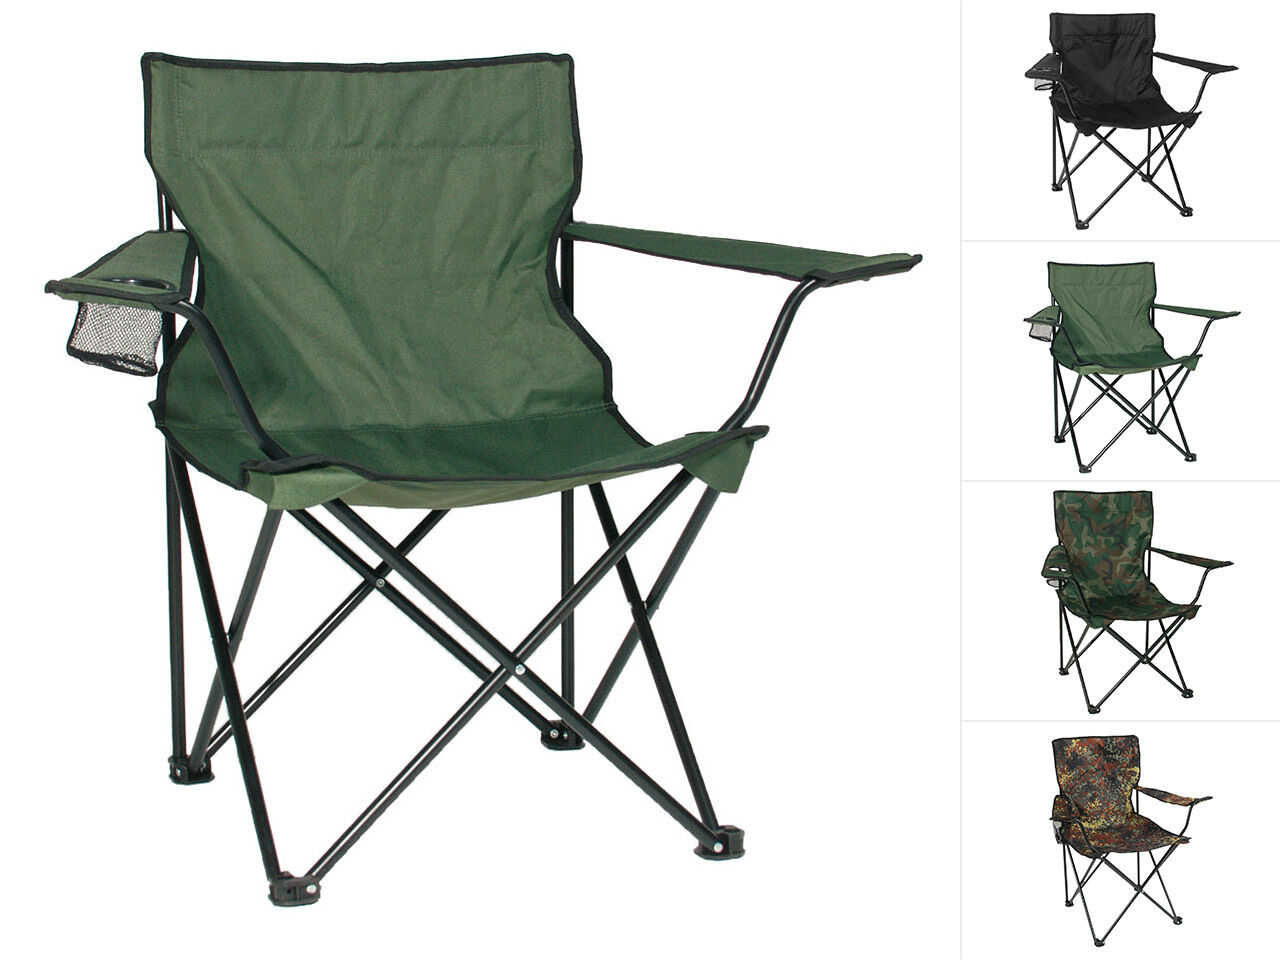 Mil Tec MBoissons Chaise Relax Fauteuil Support nP8kO0wX